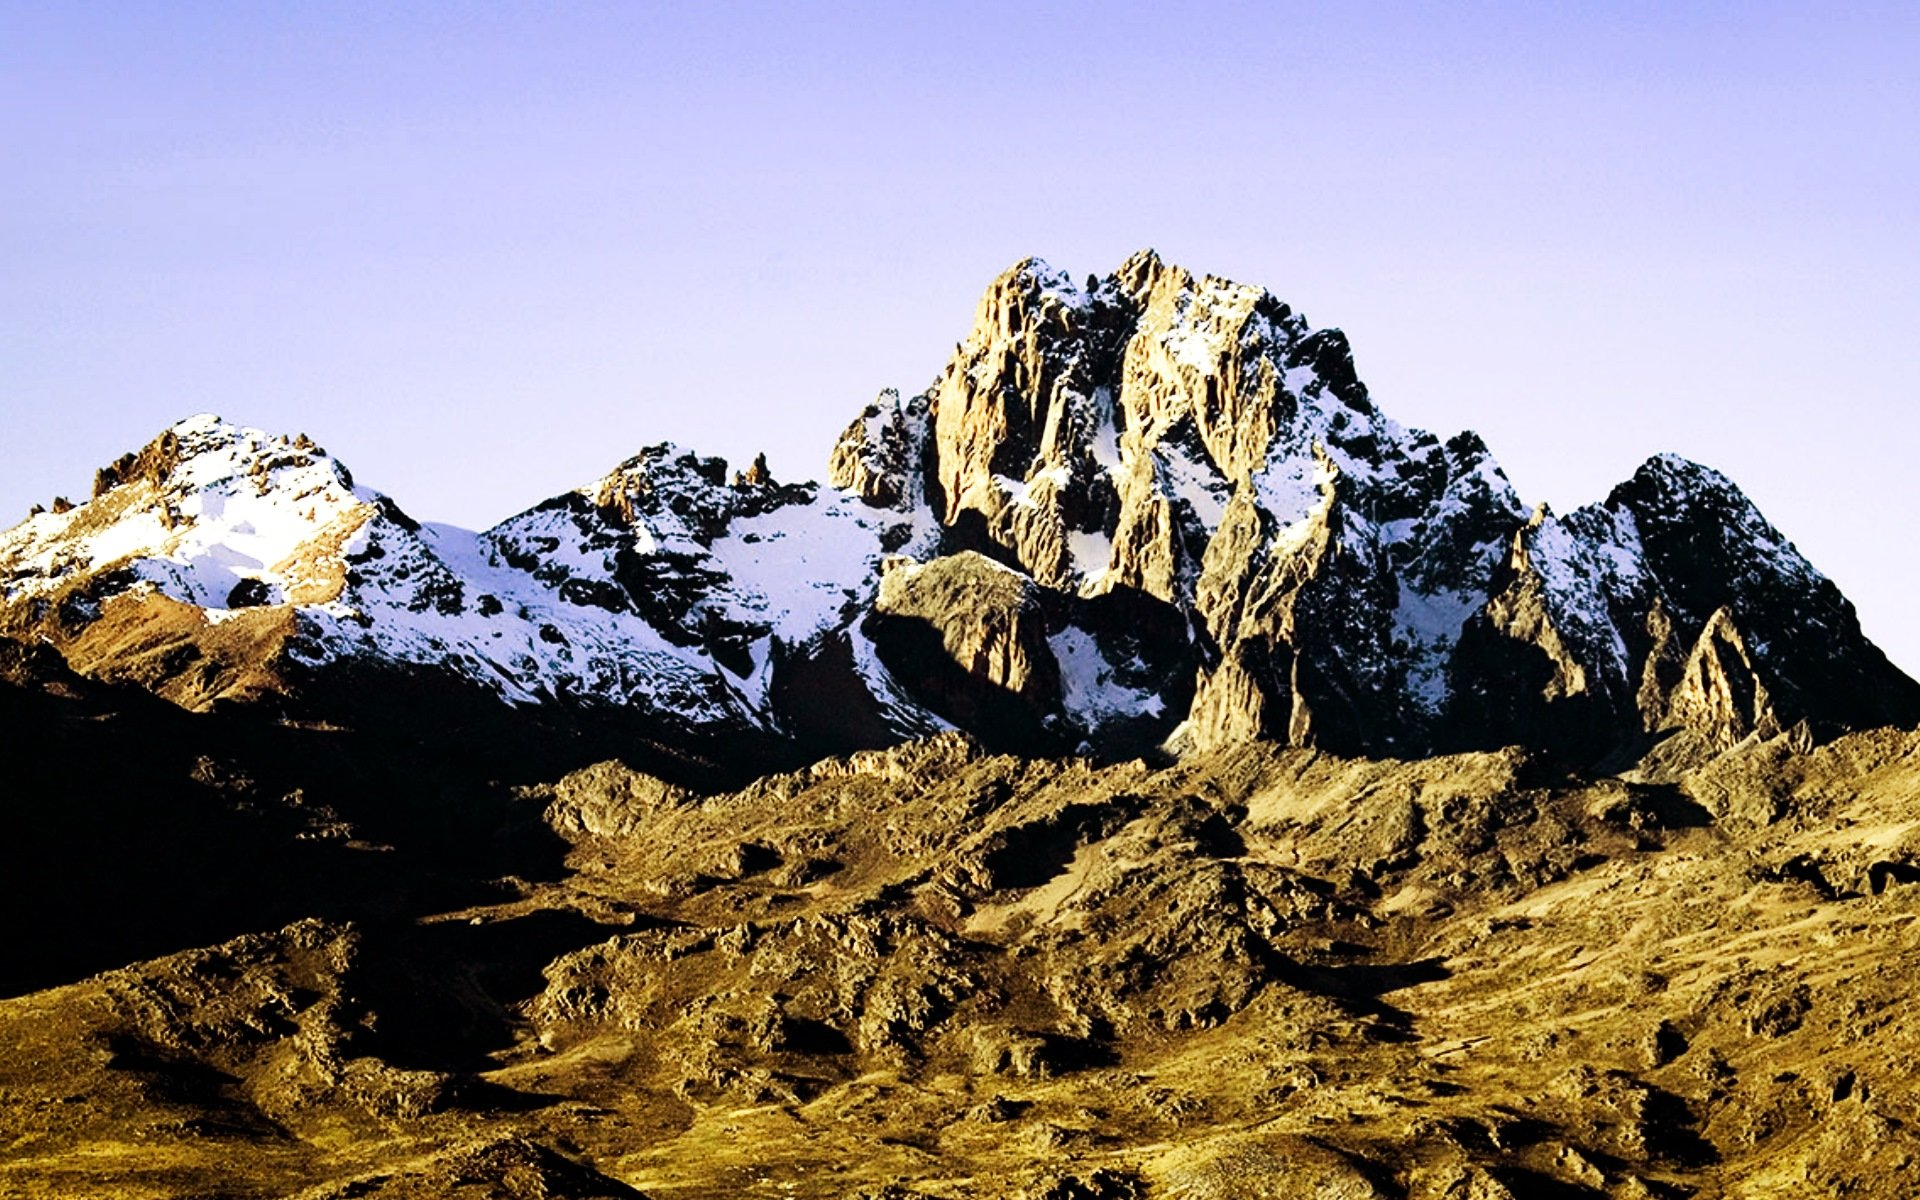 Mount Kenya National Park prides itself for being the home of Mount Kenya, Africa's second tallest mountain standing 5,199 M above the sea level.